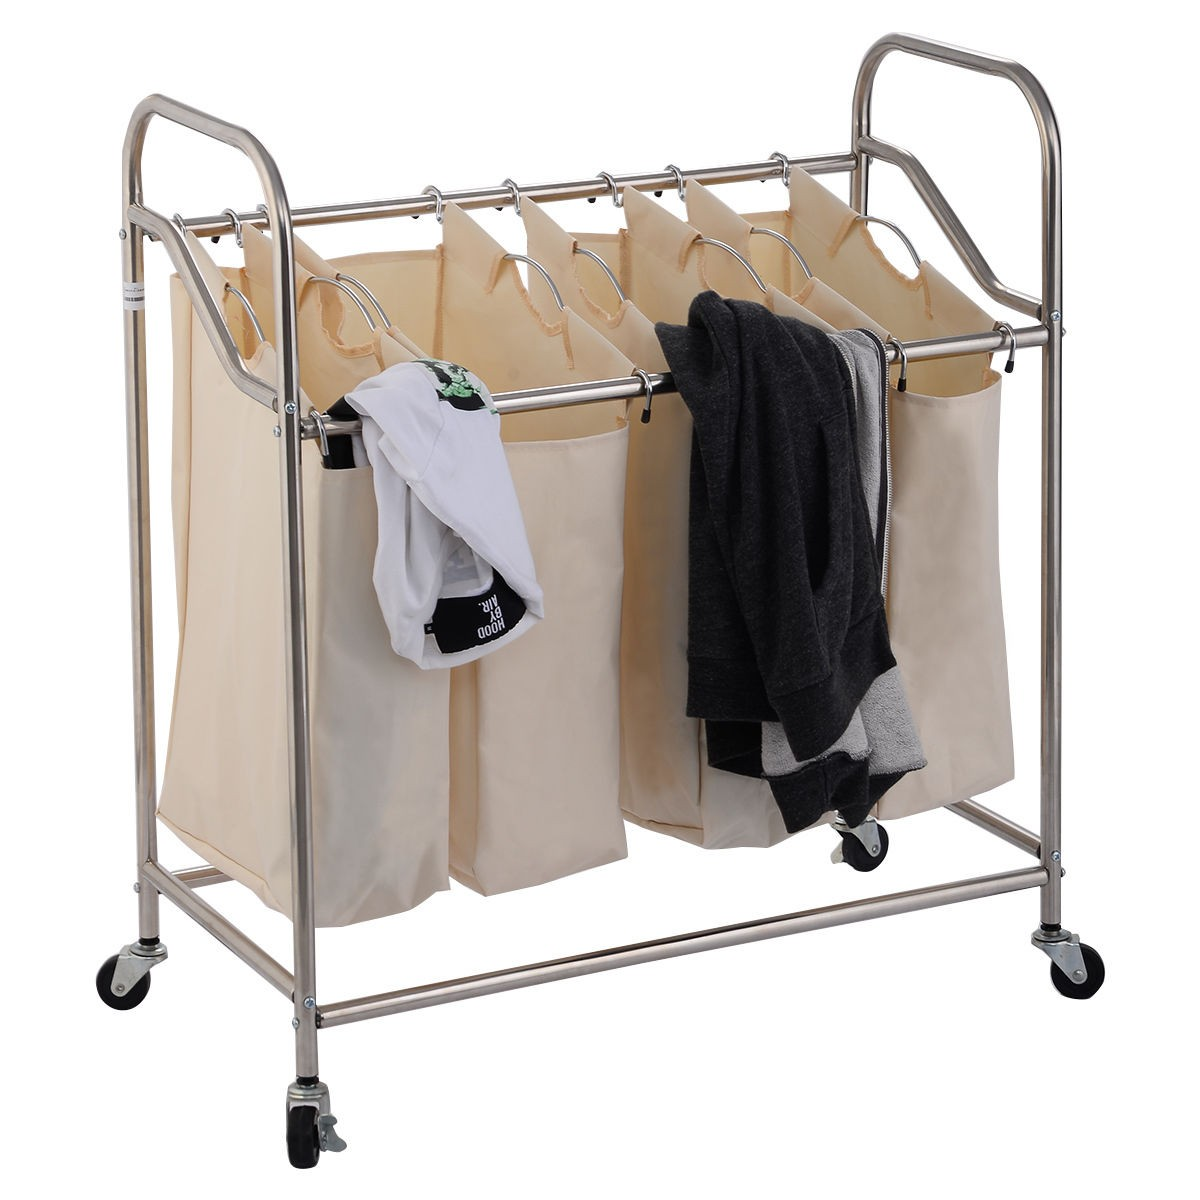 4 Bag Laundry Rolling Cart Basket Hamper Sorter Storage